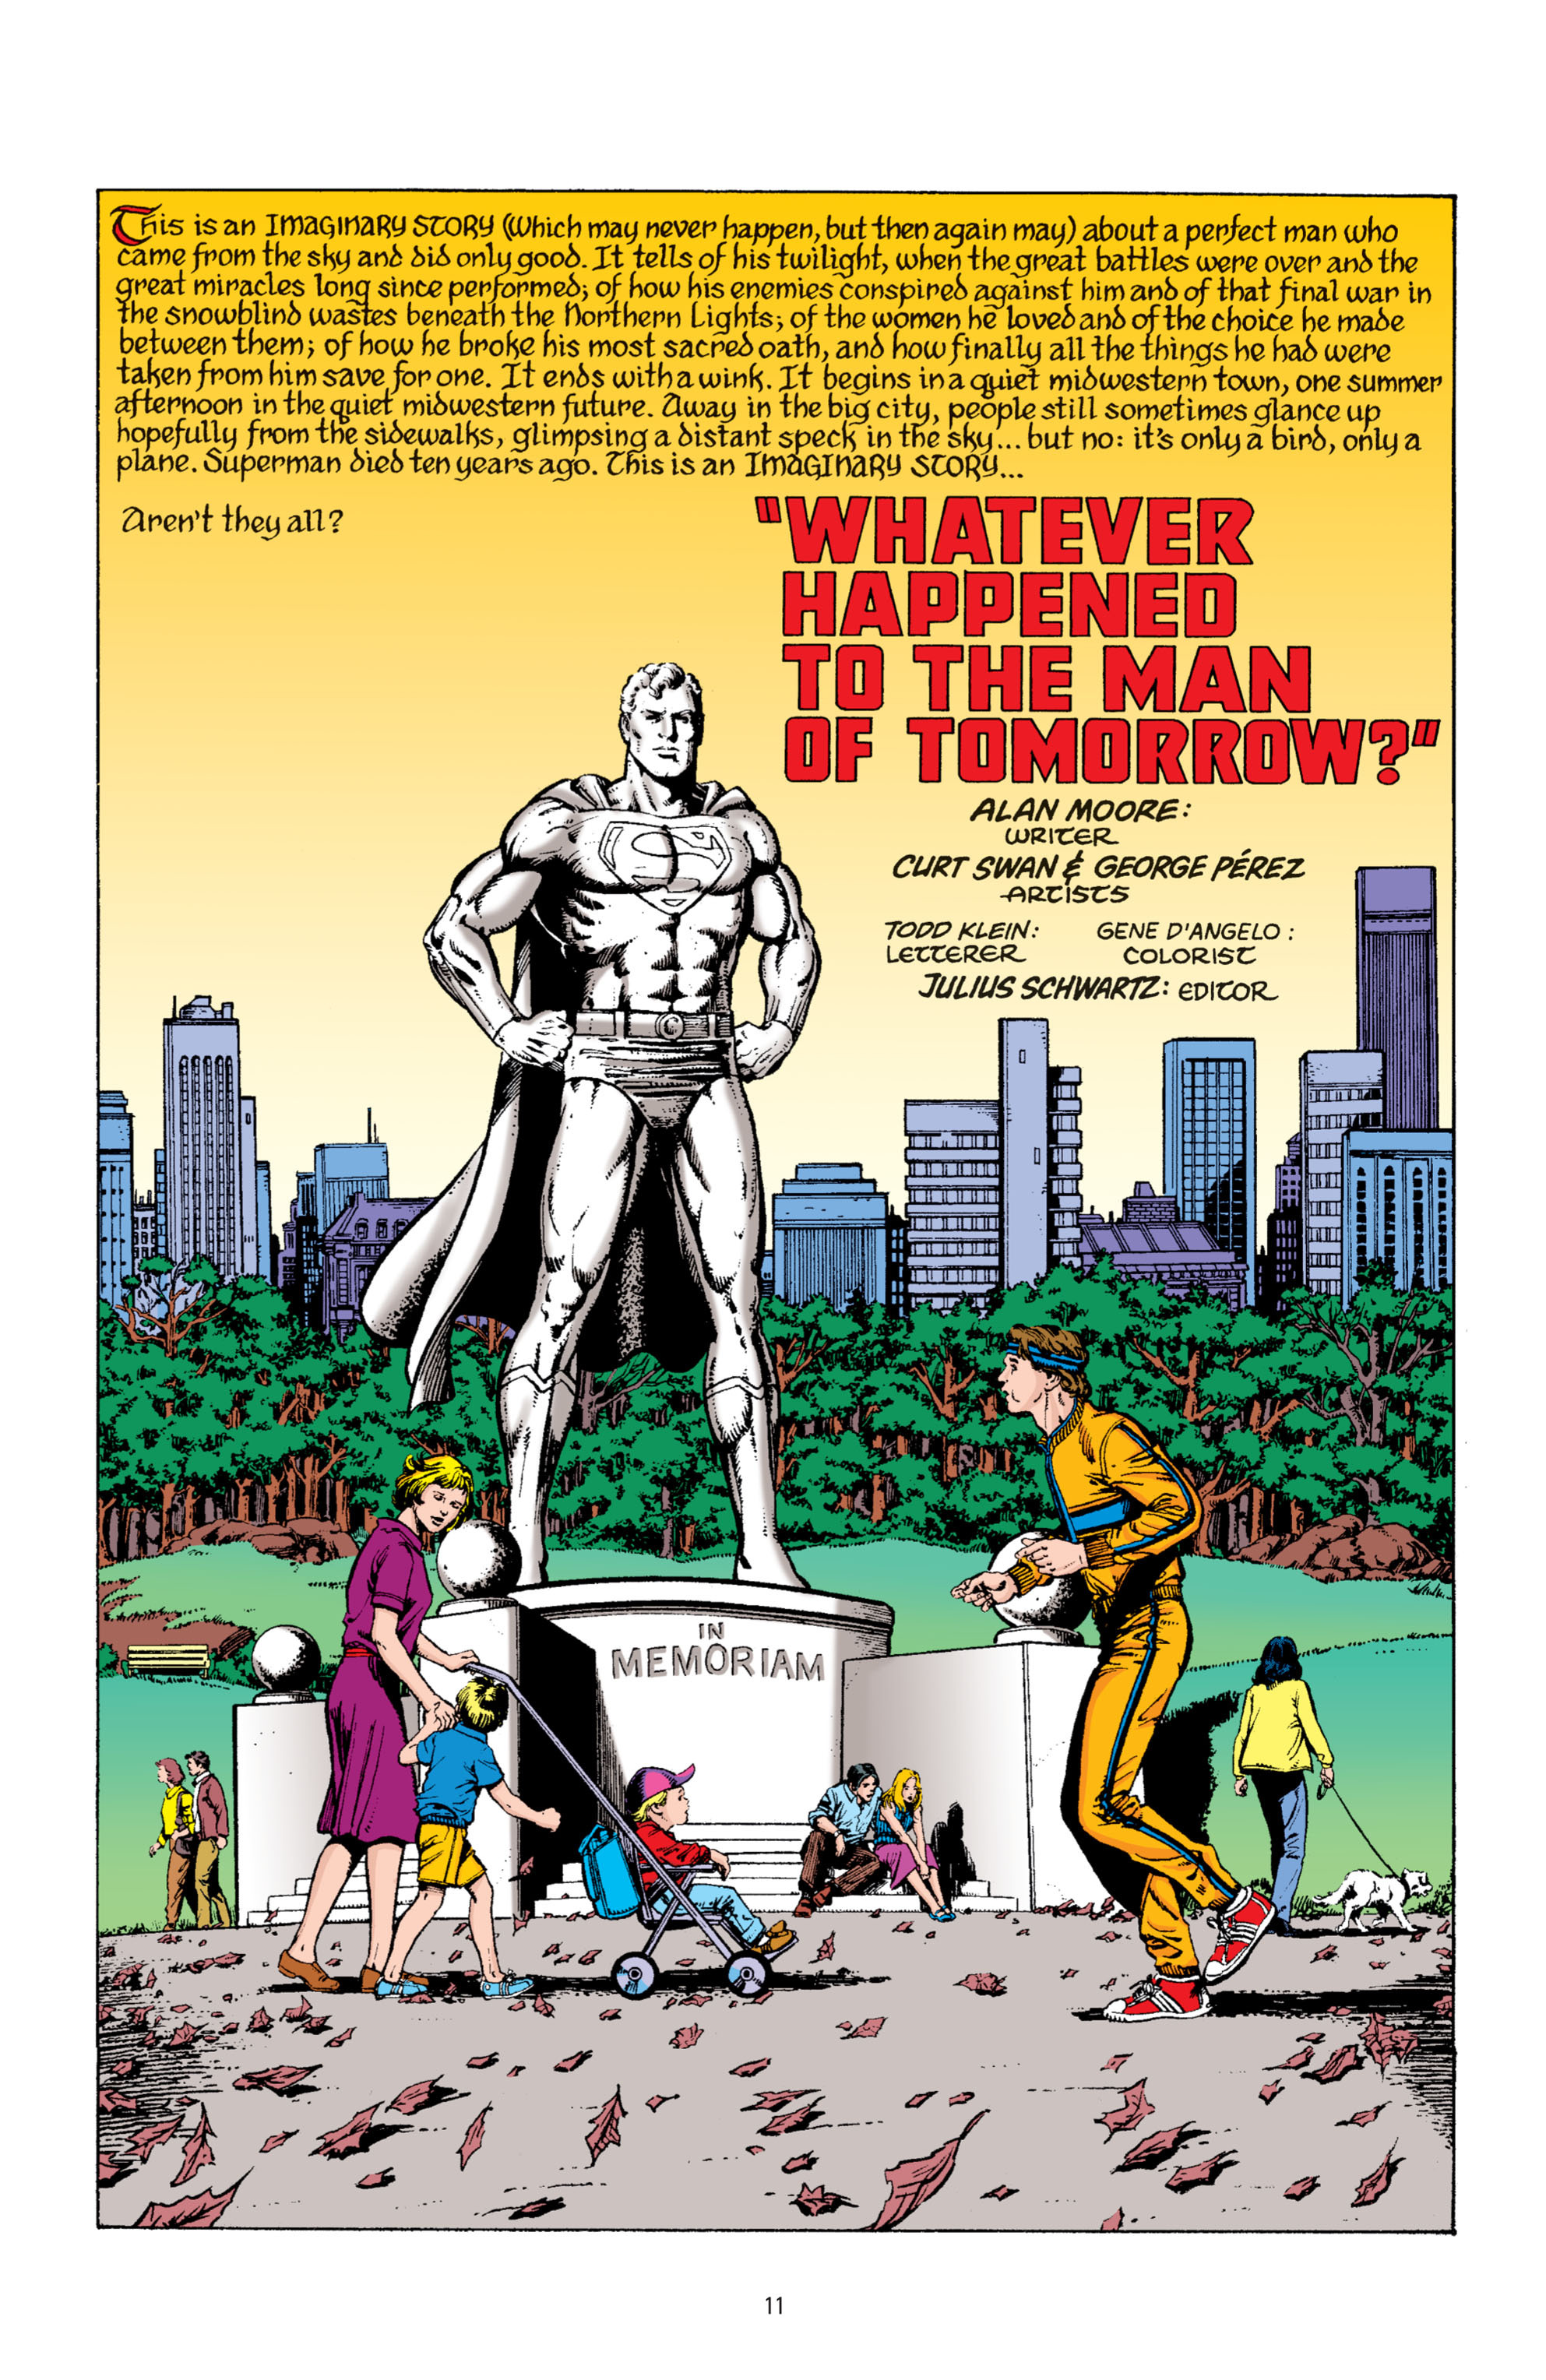 Read online Superman: Whatever Happened to the Man of Tomorrow? comic -  Issue # TPB - 10